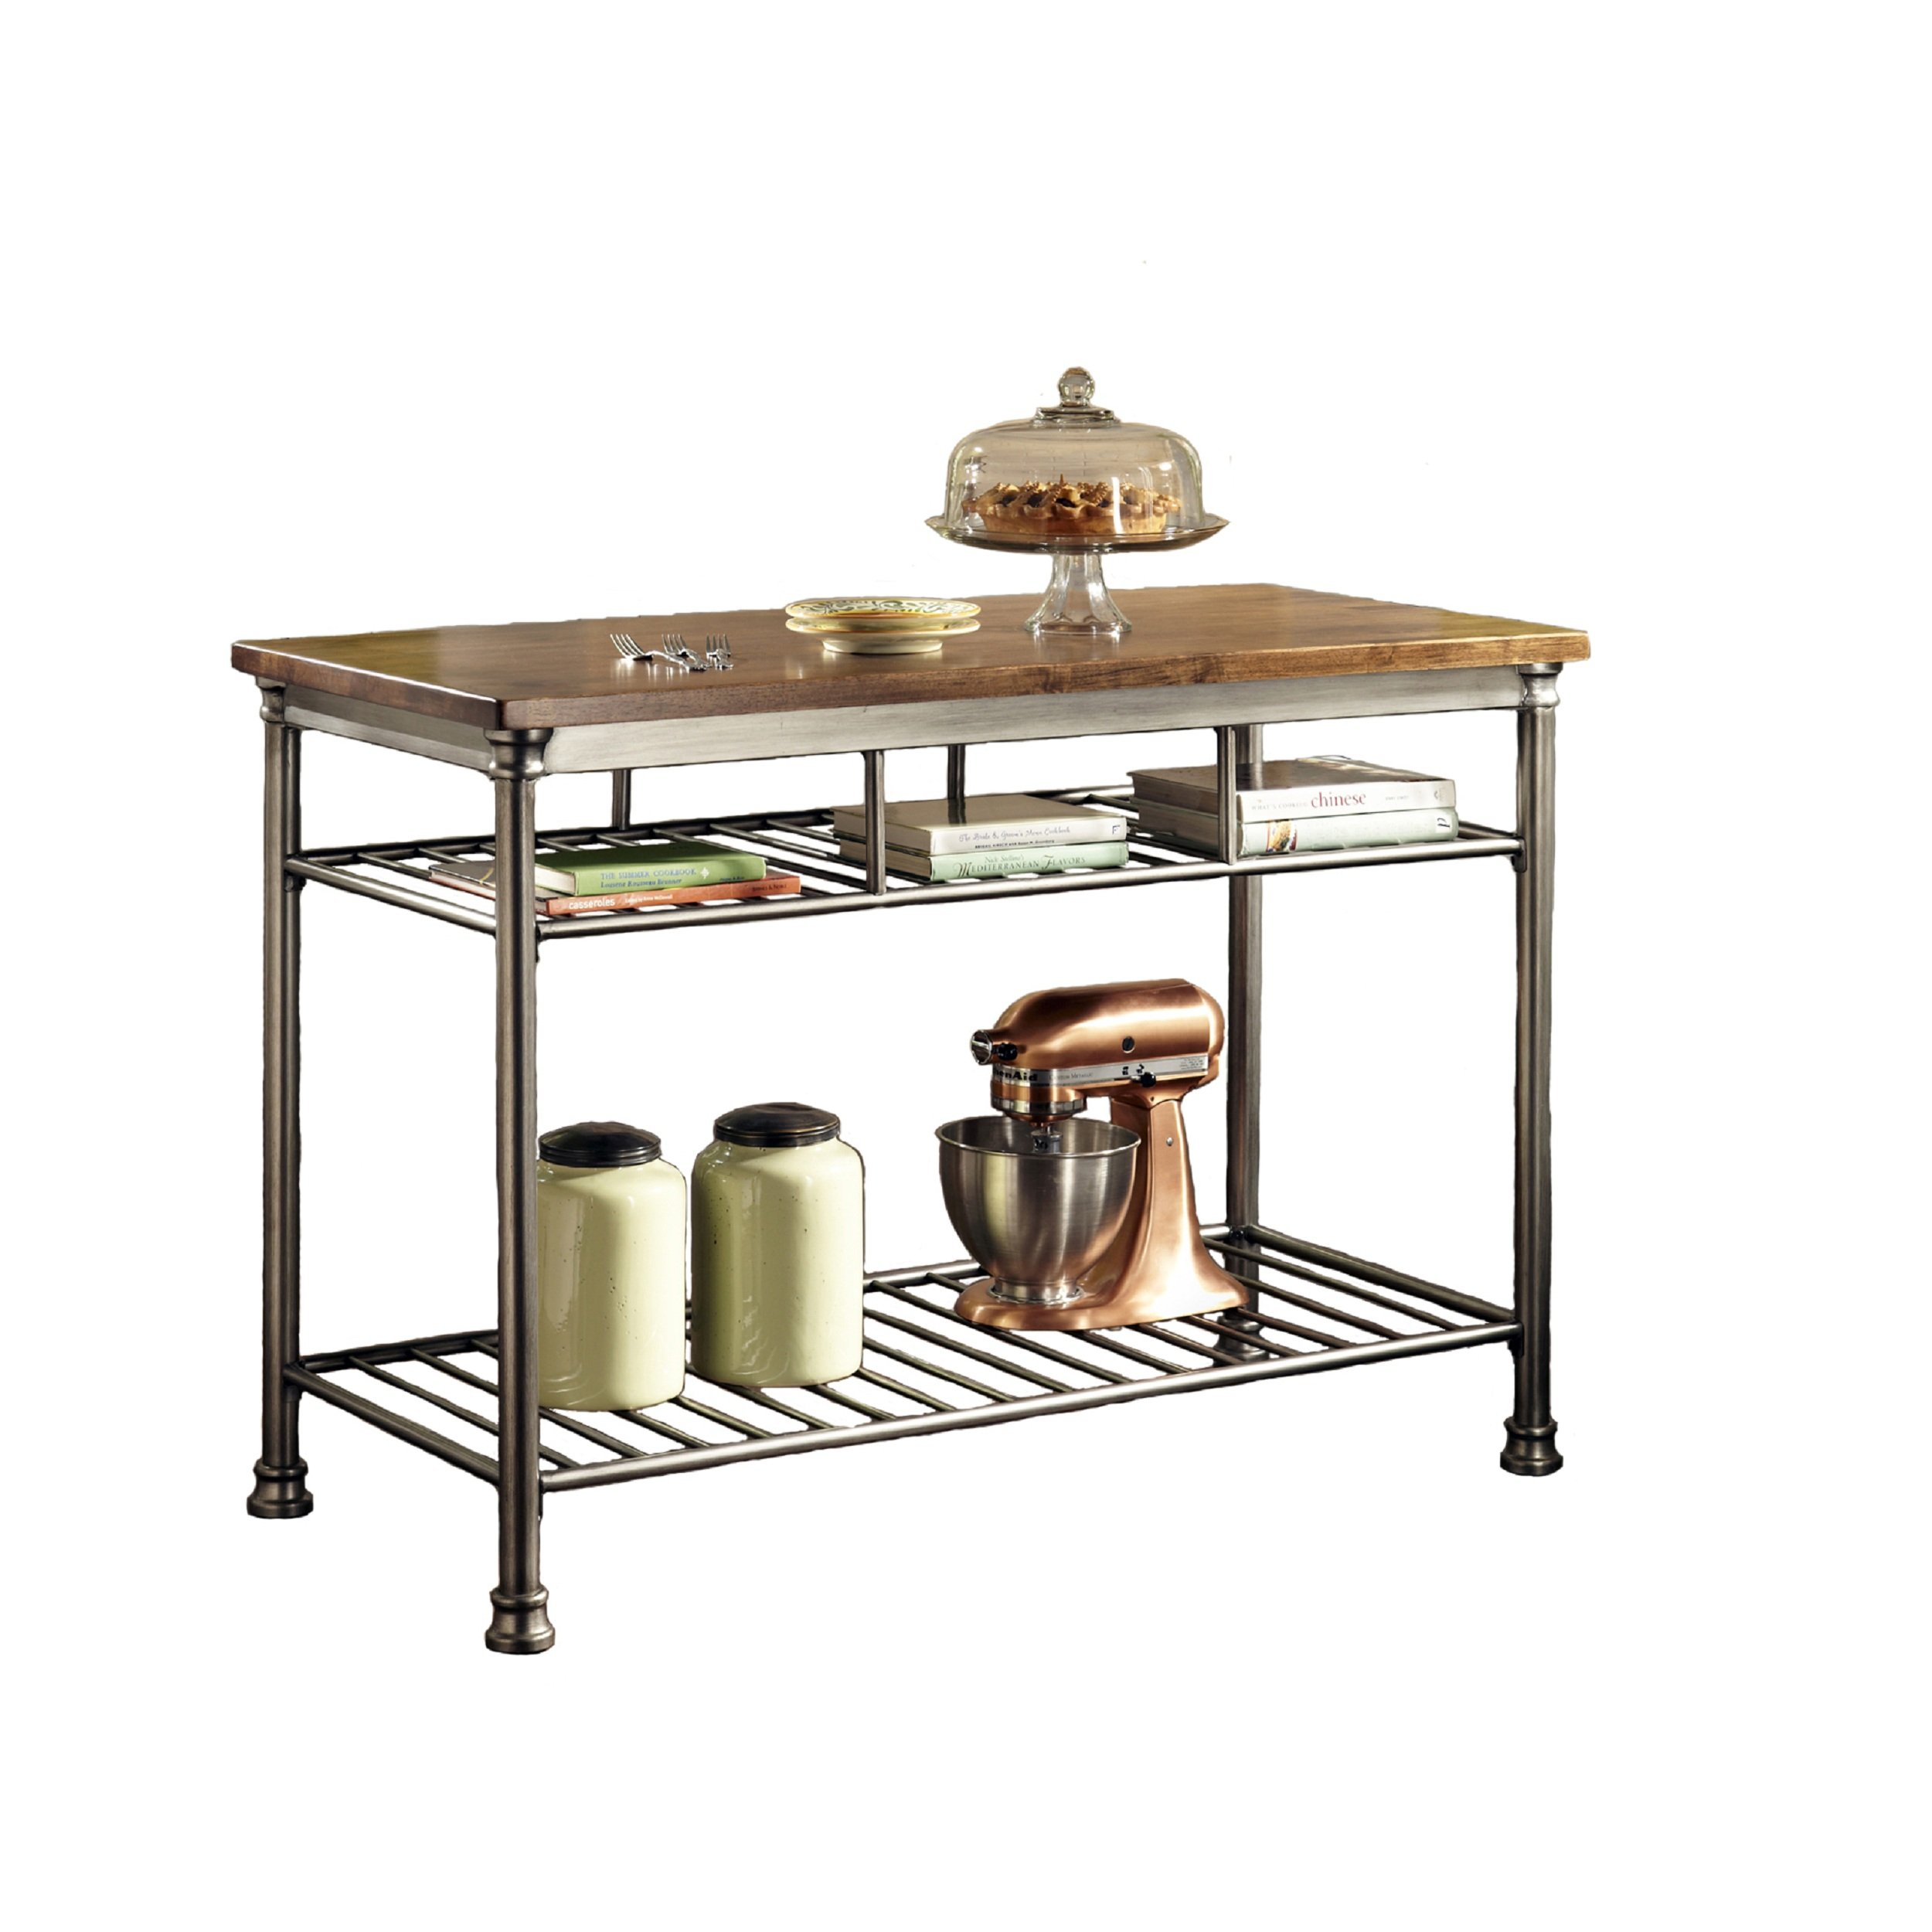 The Orleans Kitchen Island by Home Styles by Home Styles